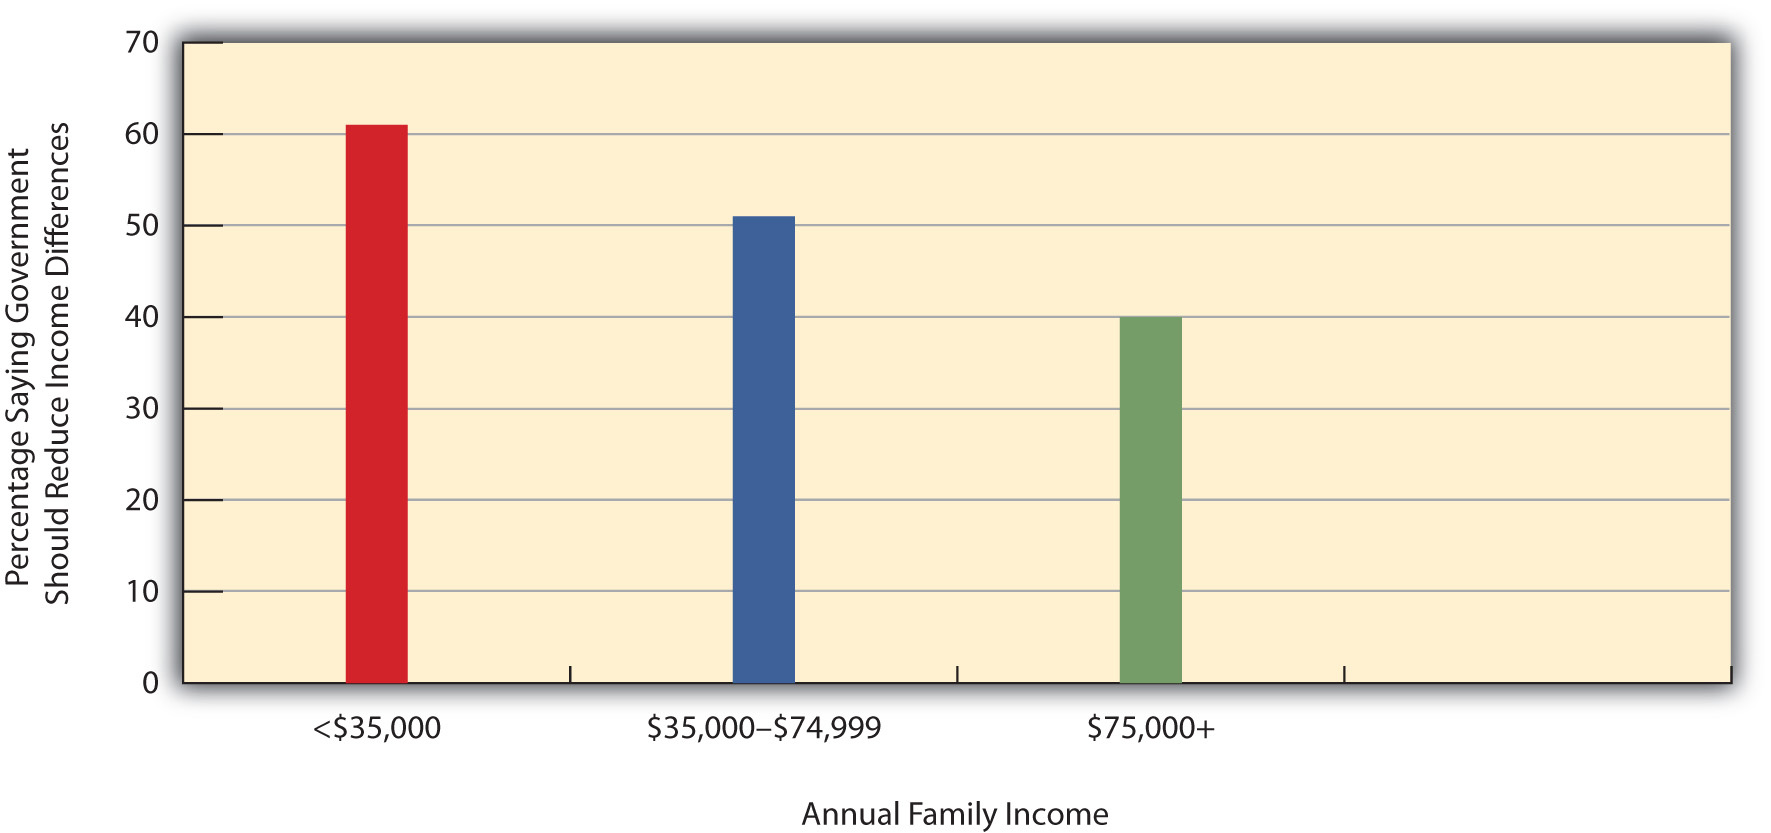 Annual Family Income and Belief That Government